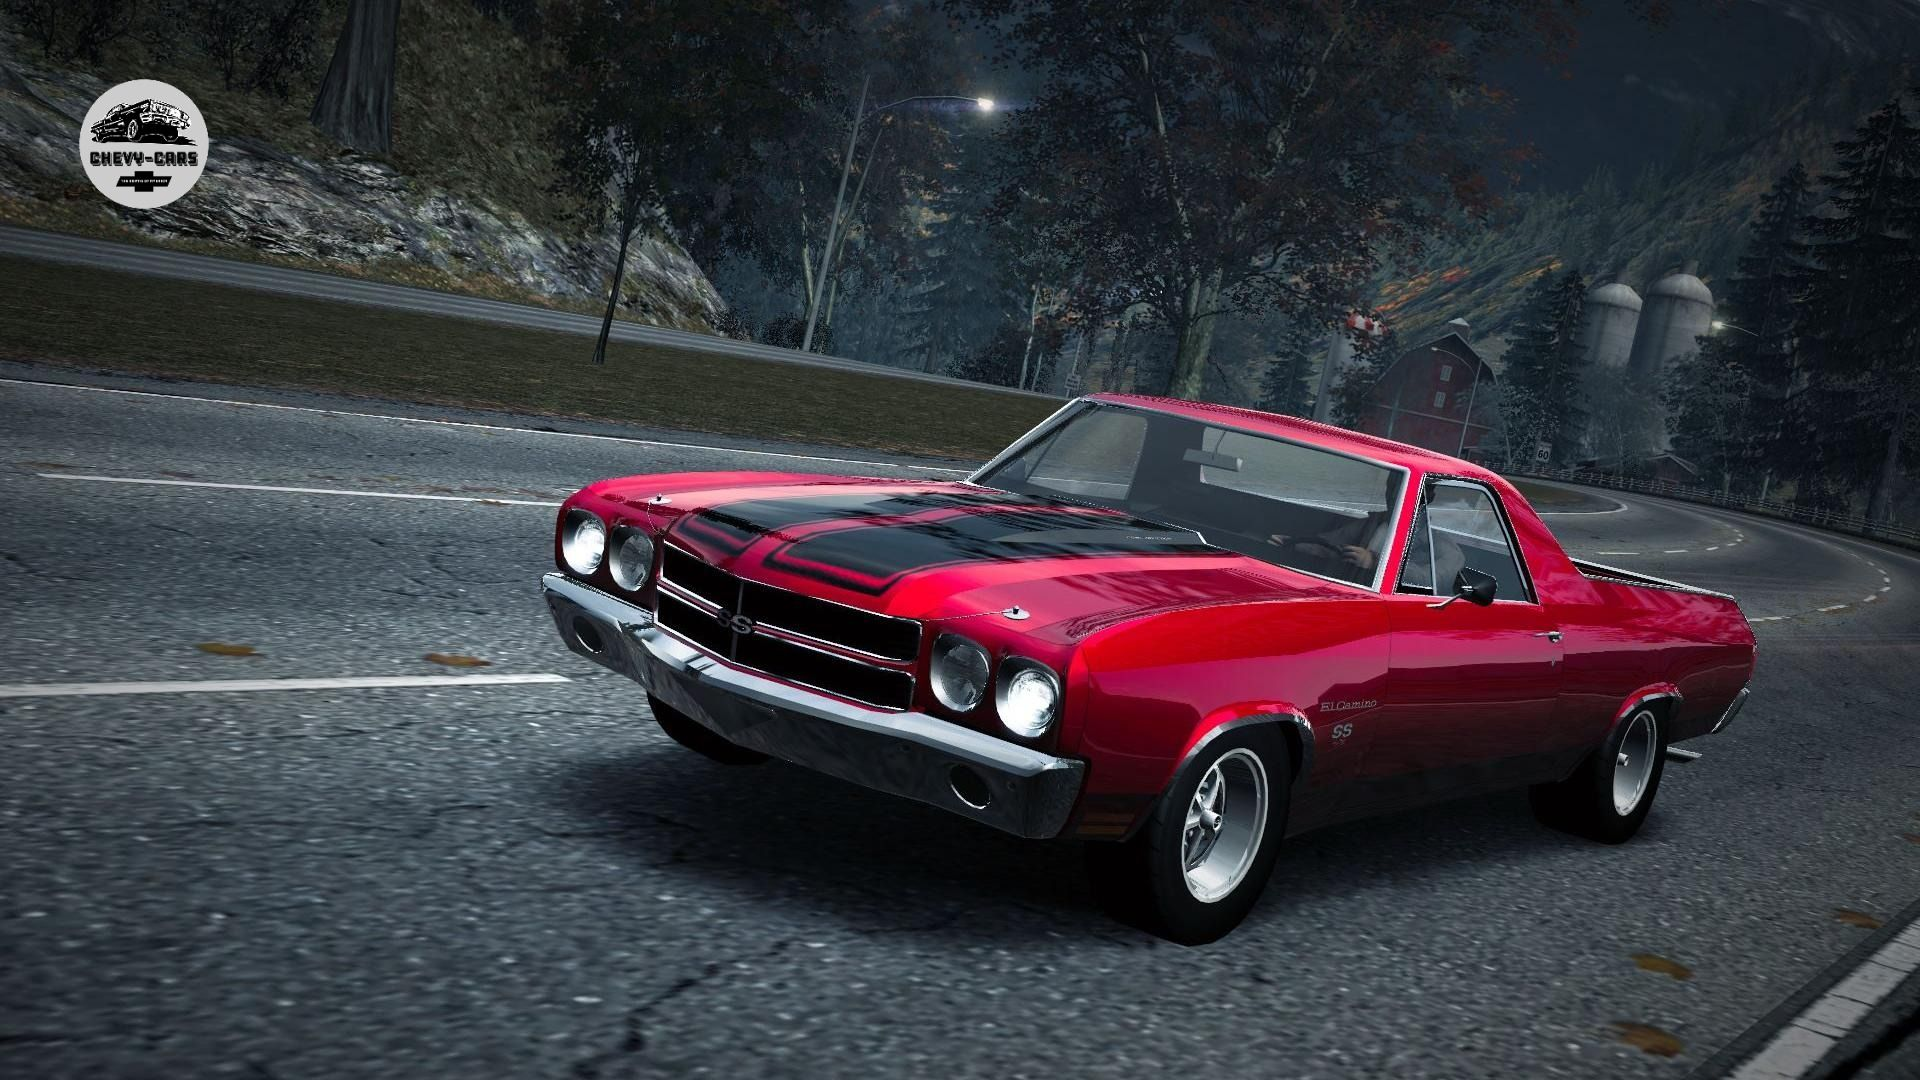 Retro Chevy El Camino In 2020 Chevy El Camino Chevy Cars For